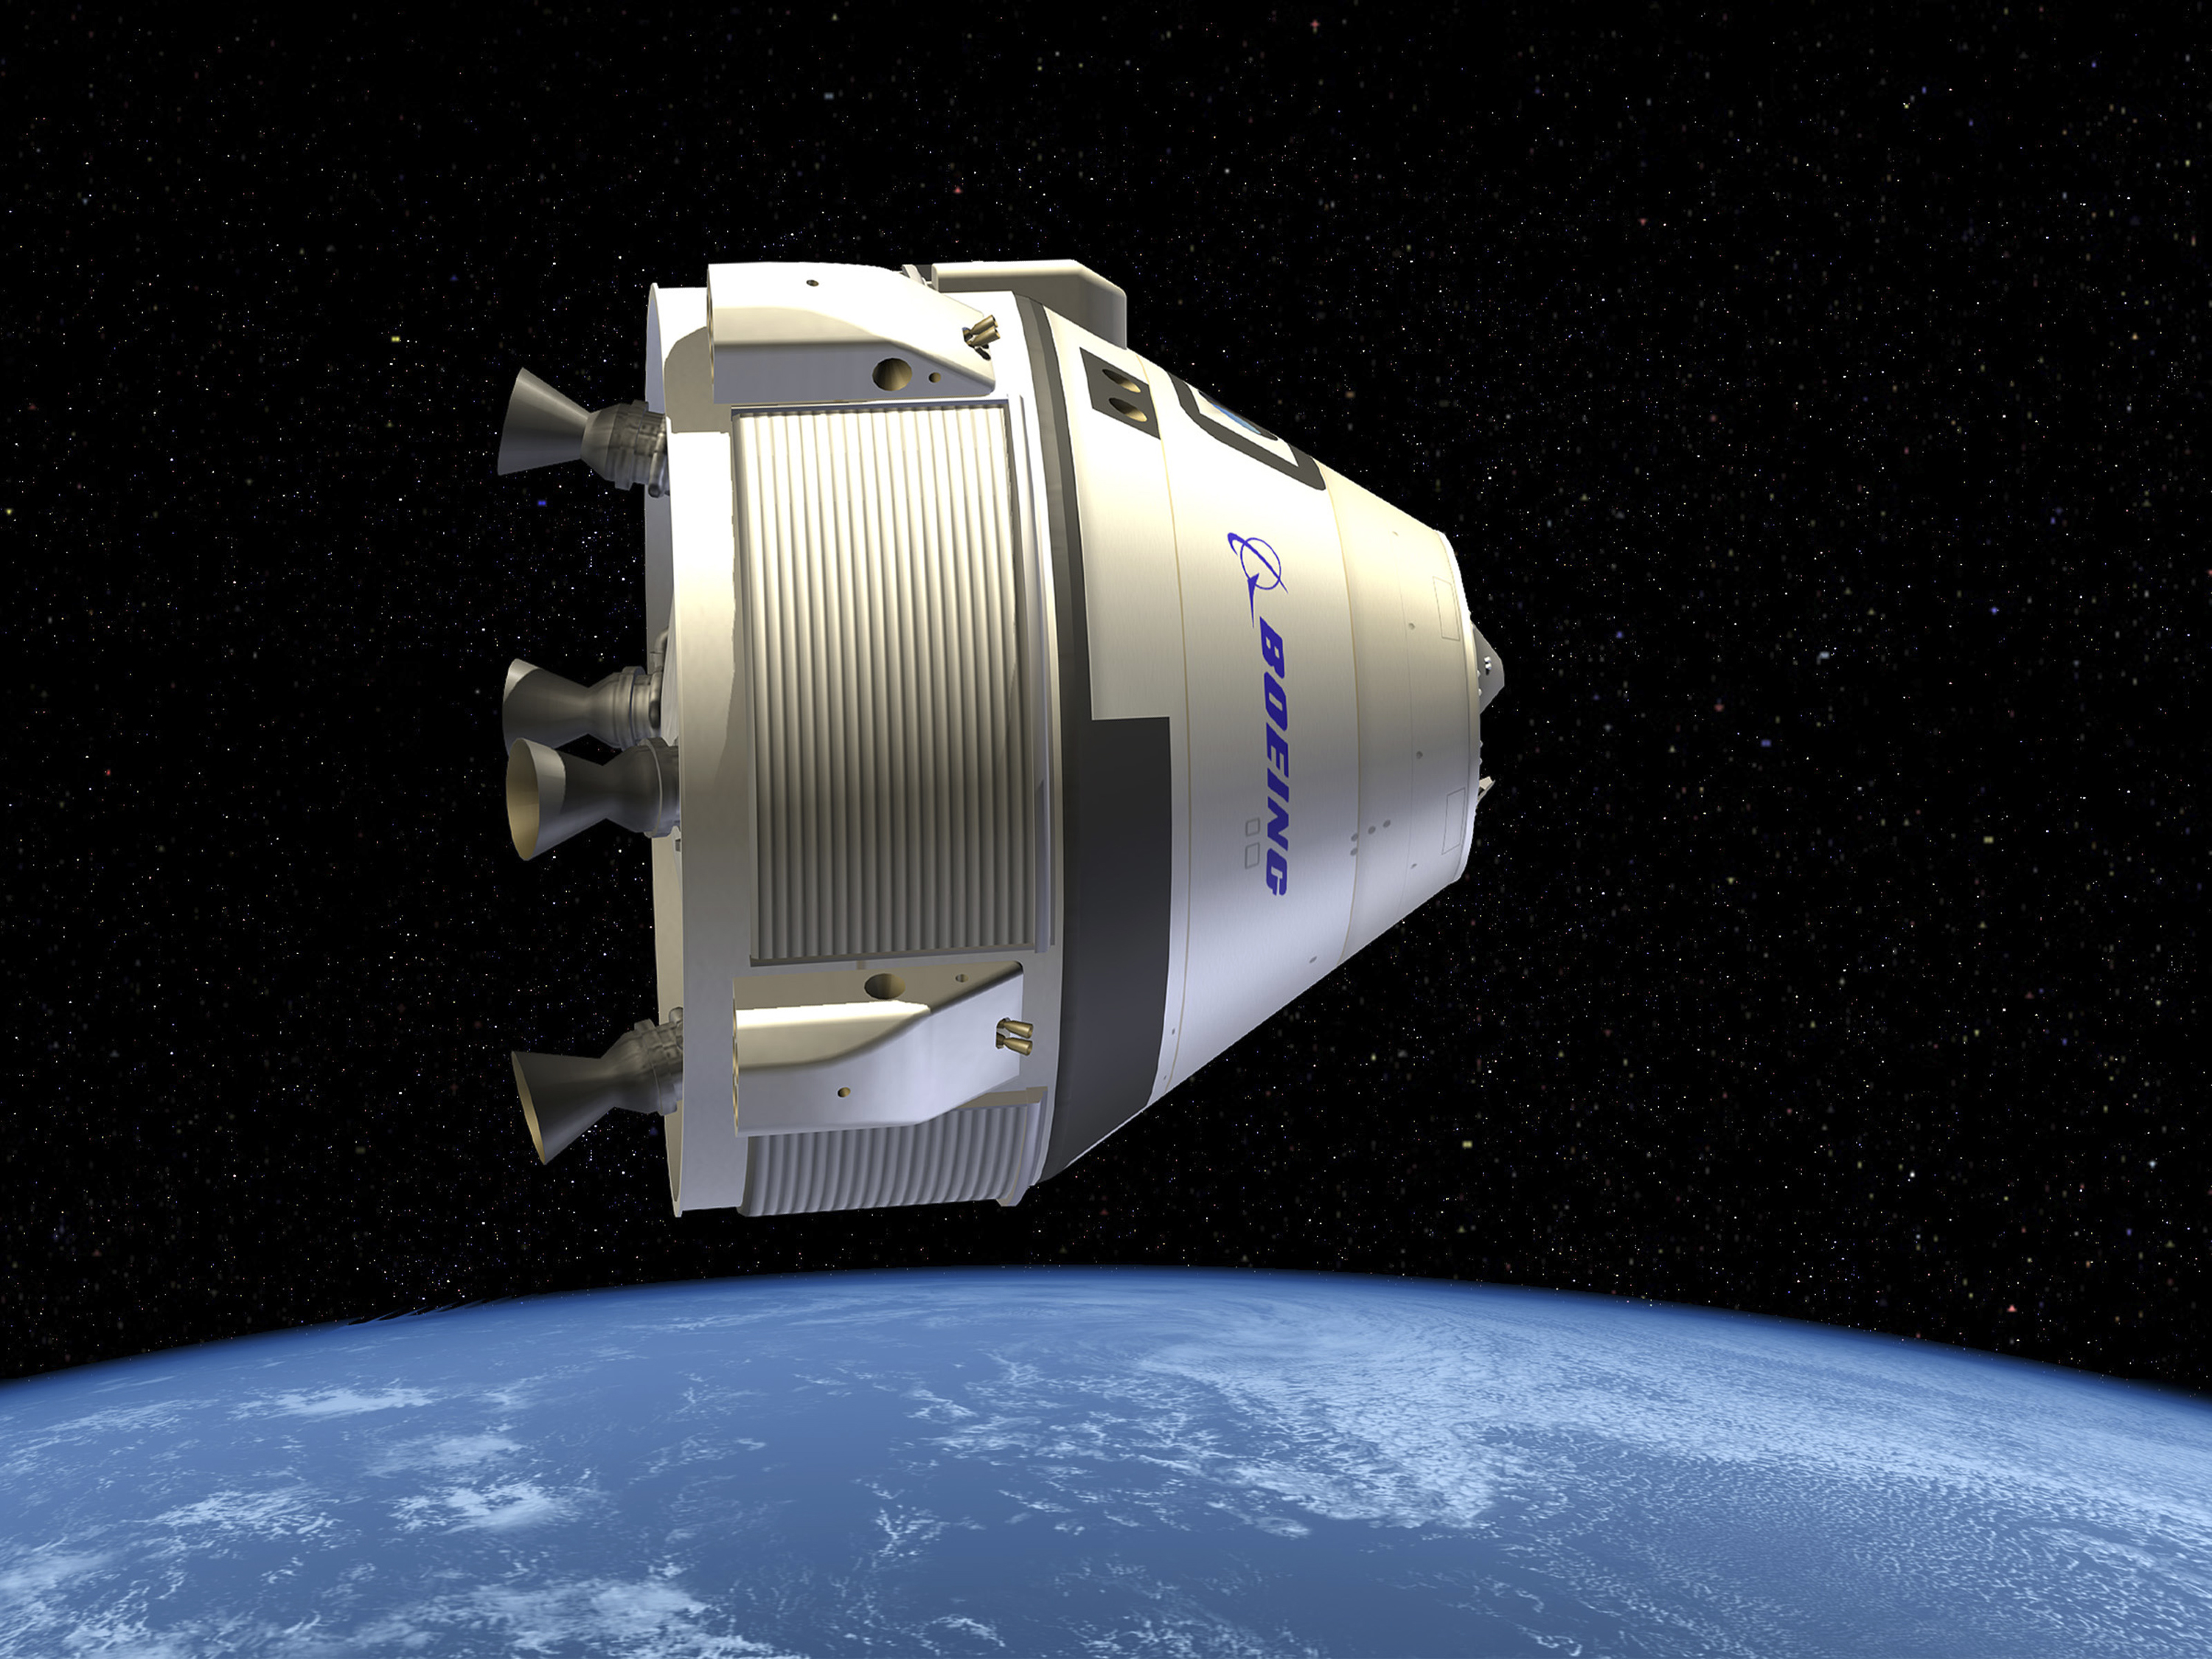 nasa new space ship - photo #38